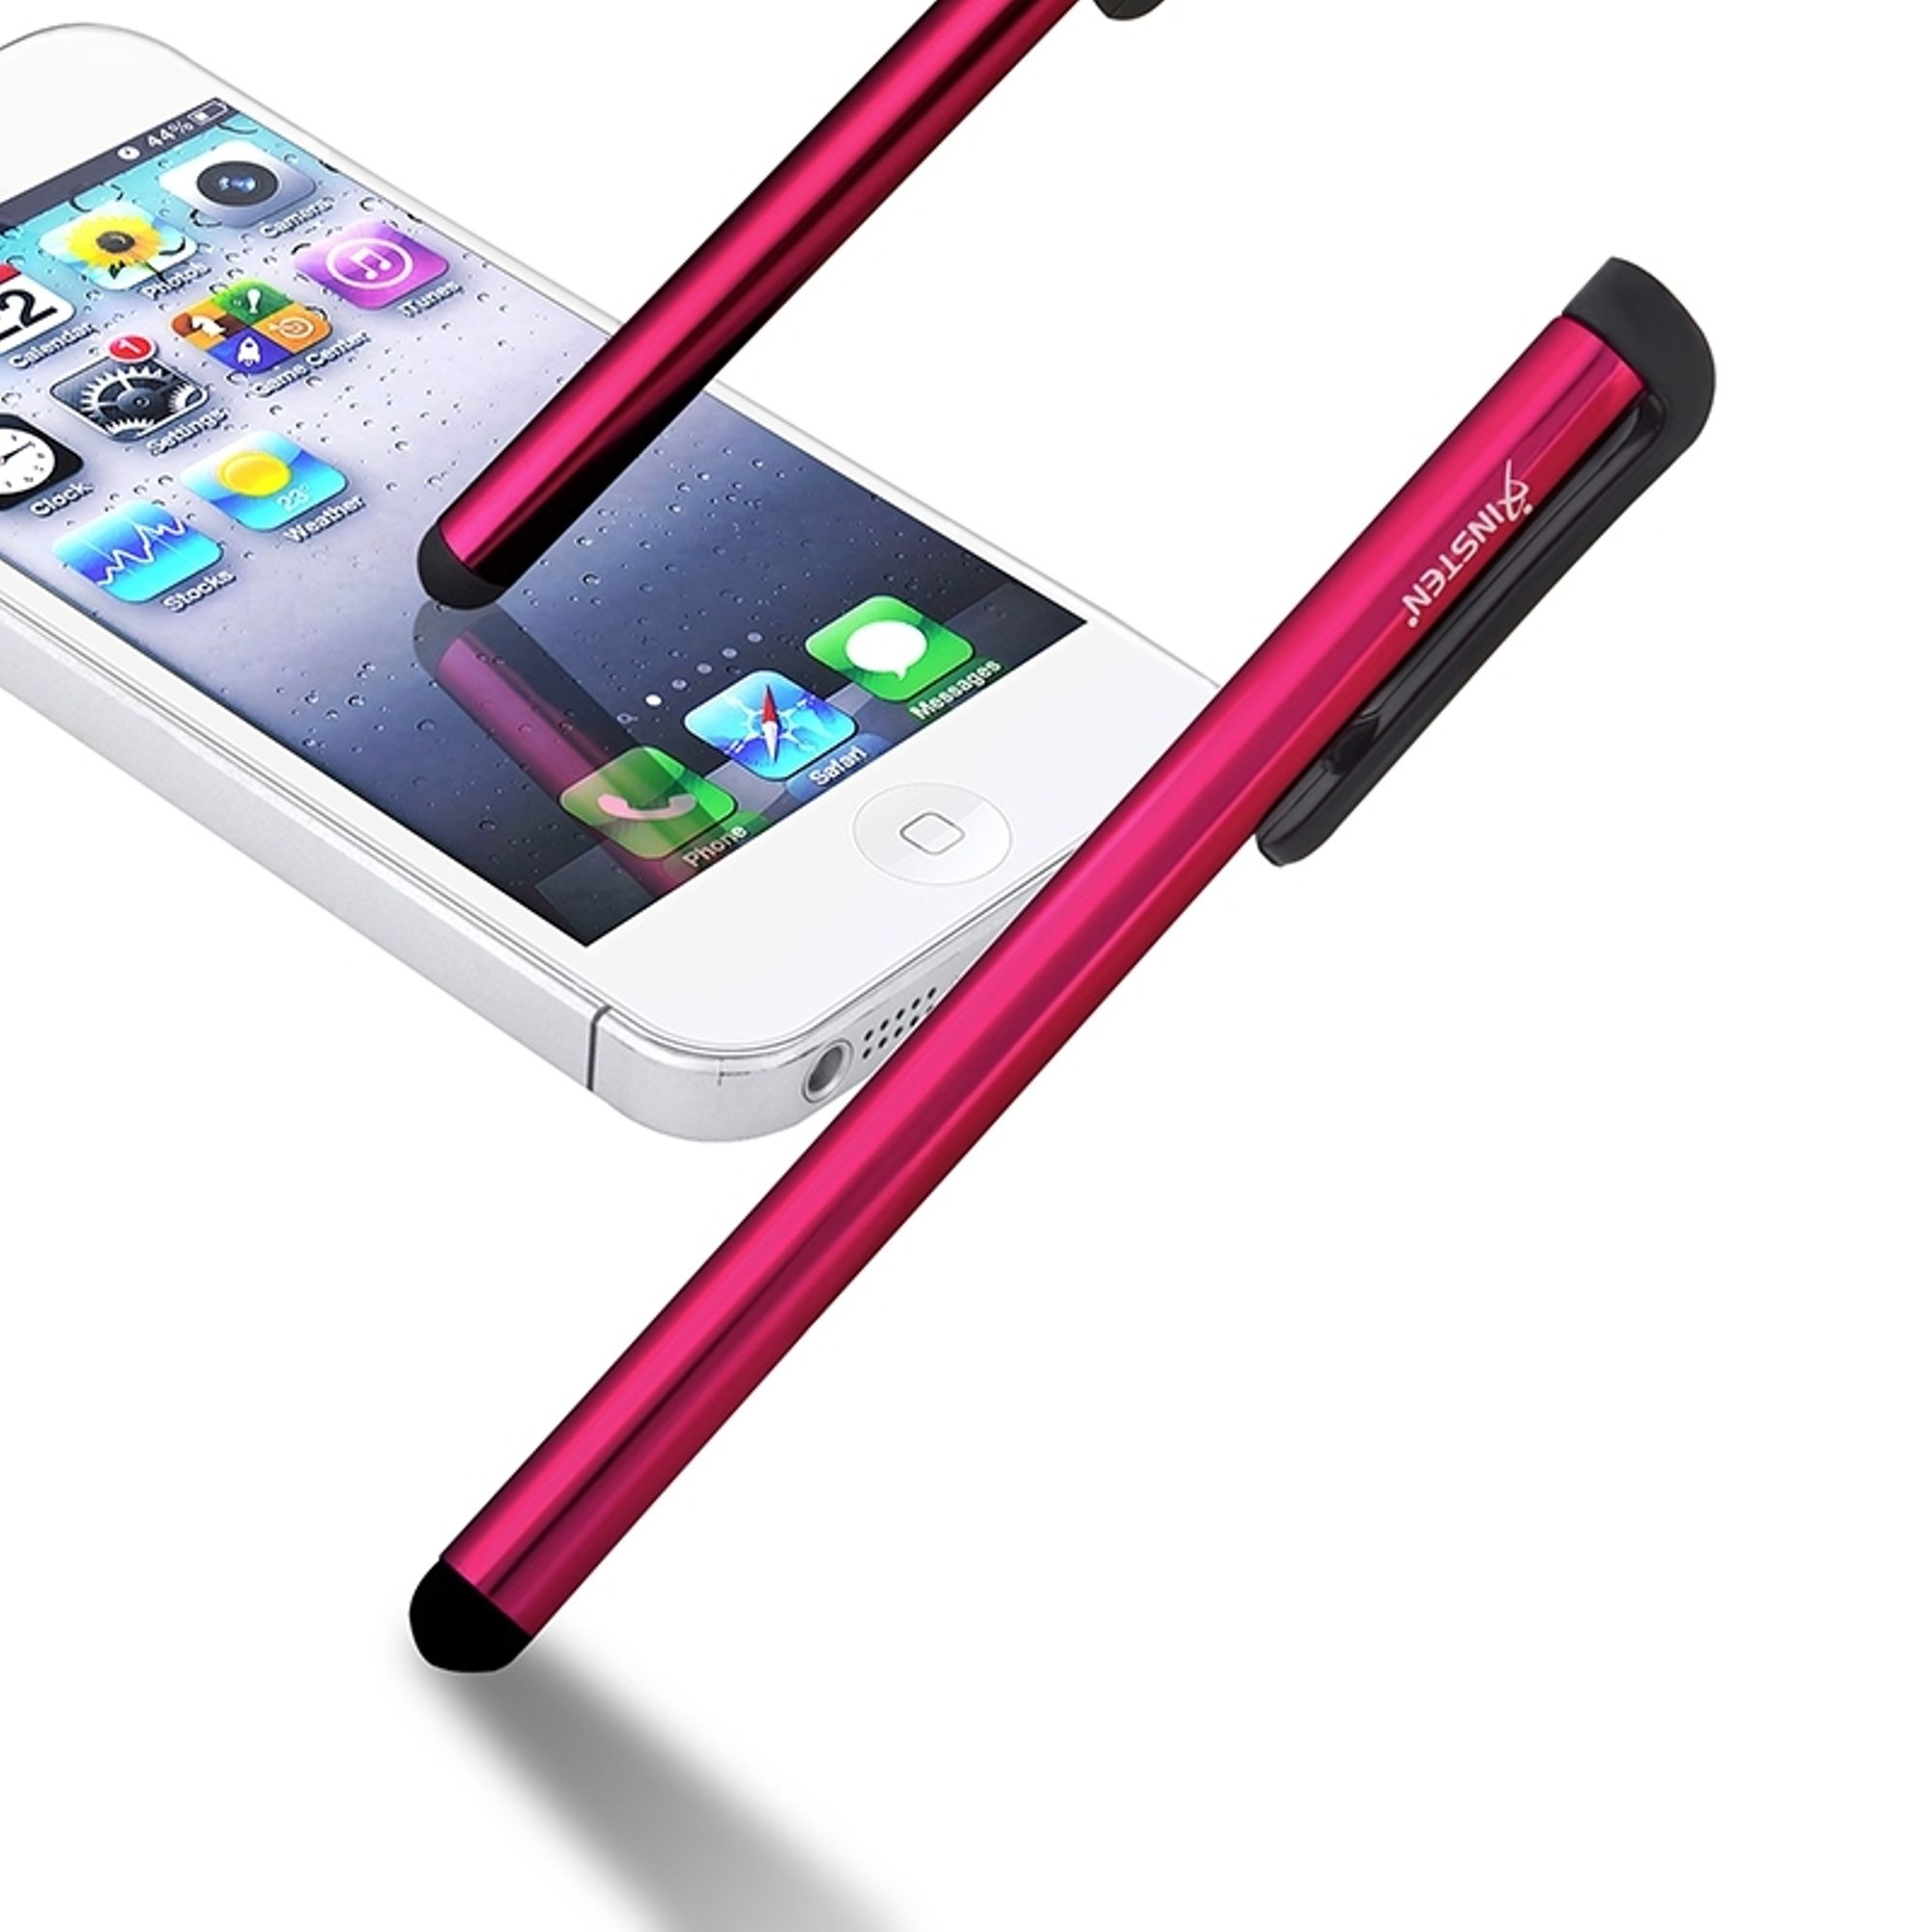 Insten Universal Touch Screen Stylus Pen Red For iPhone XS XS Max XR X7 iPad Samsung Galaxy Tab  4  LG Pad Tablet RCA iView Smartab Ematic HIGHQ Sprout Channel Nabi Nextbook Visual Land TG-TEK RealPad